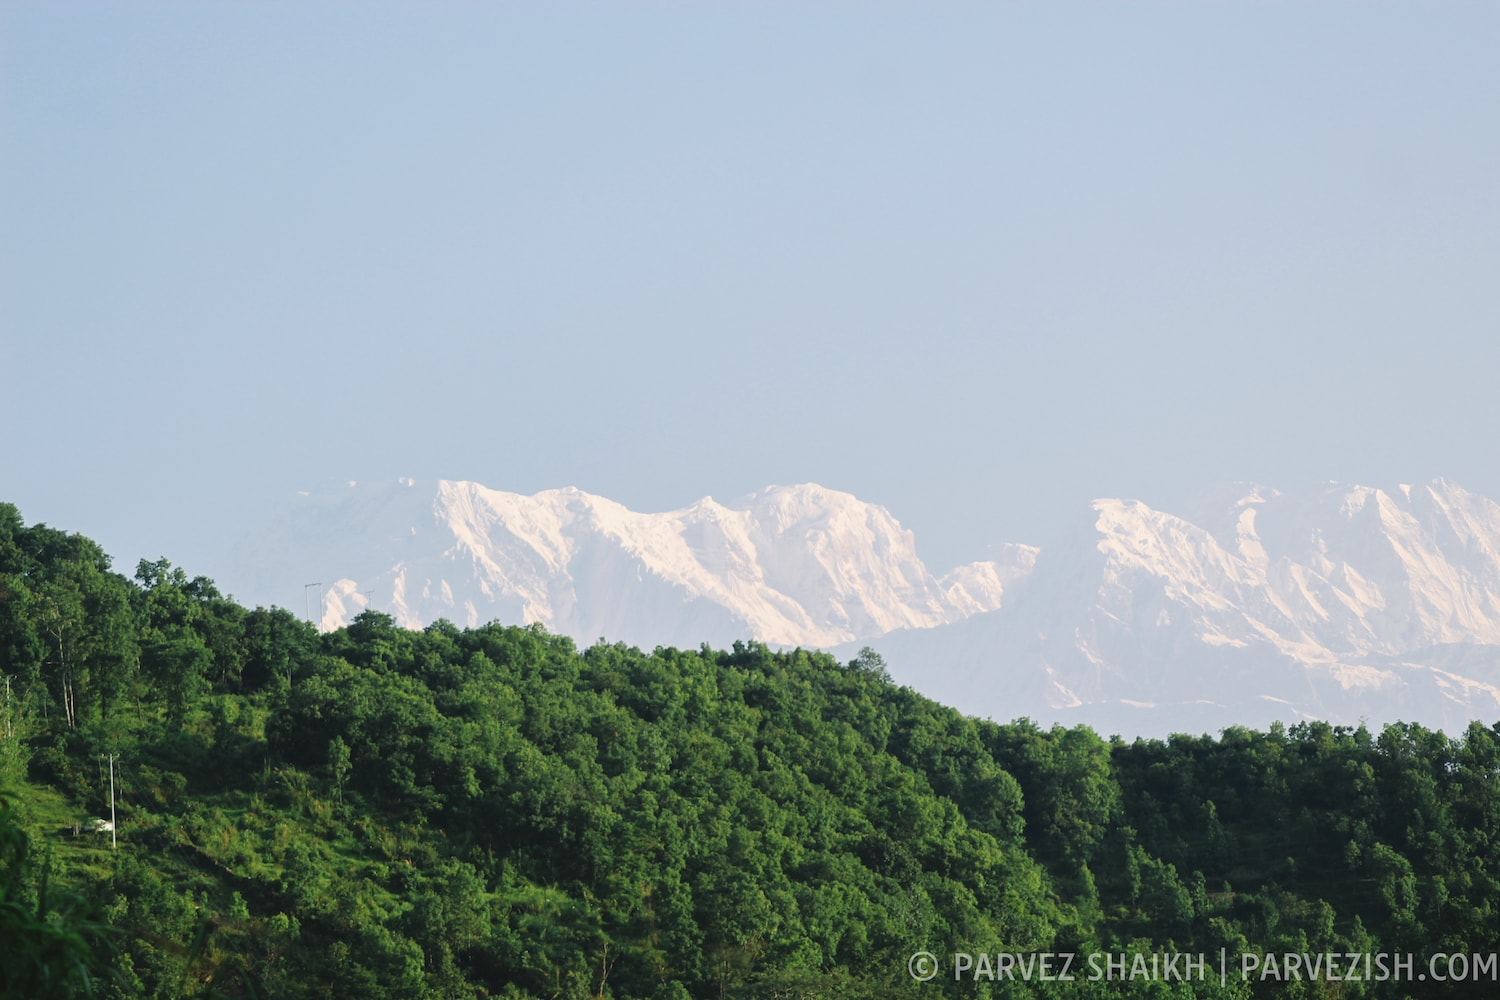 A View of the Himalayan Range from Methlang